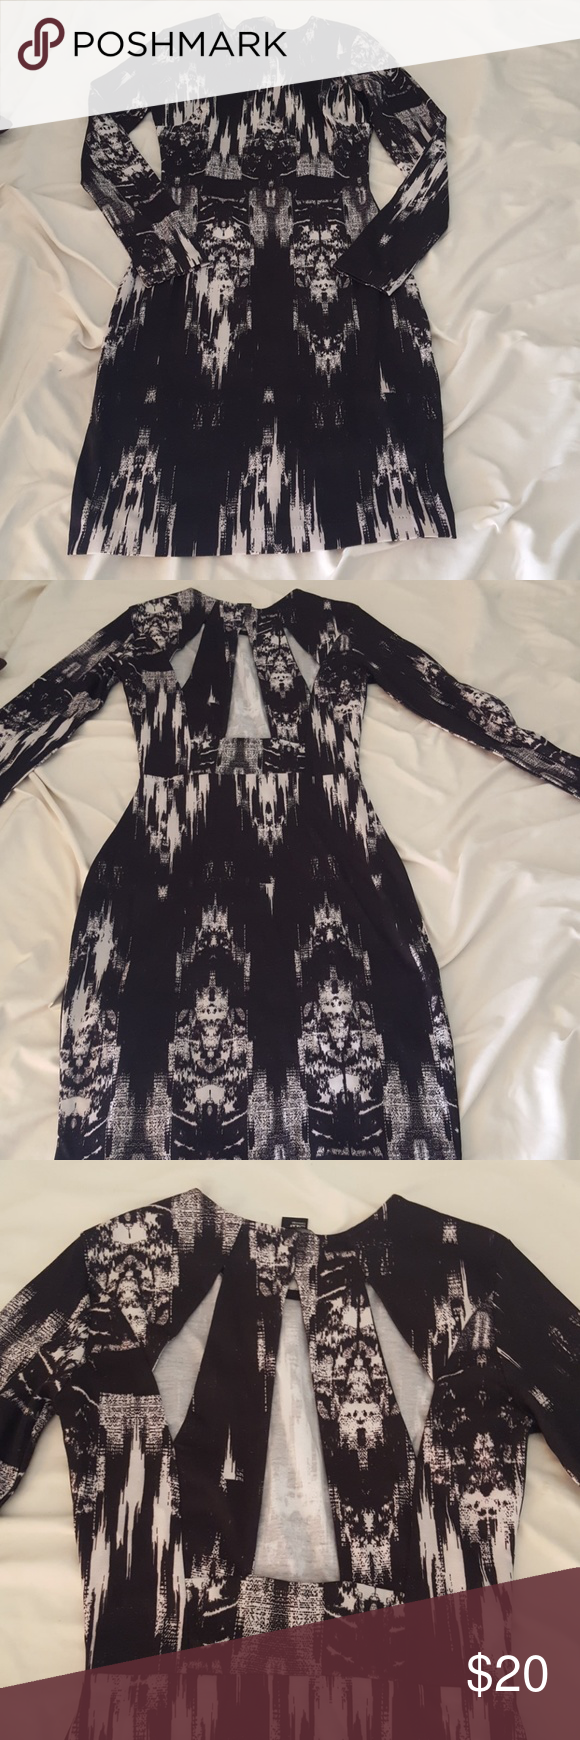 Black fitted dress with back cut out customer support